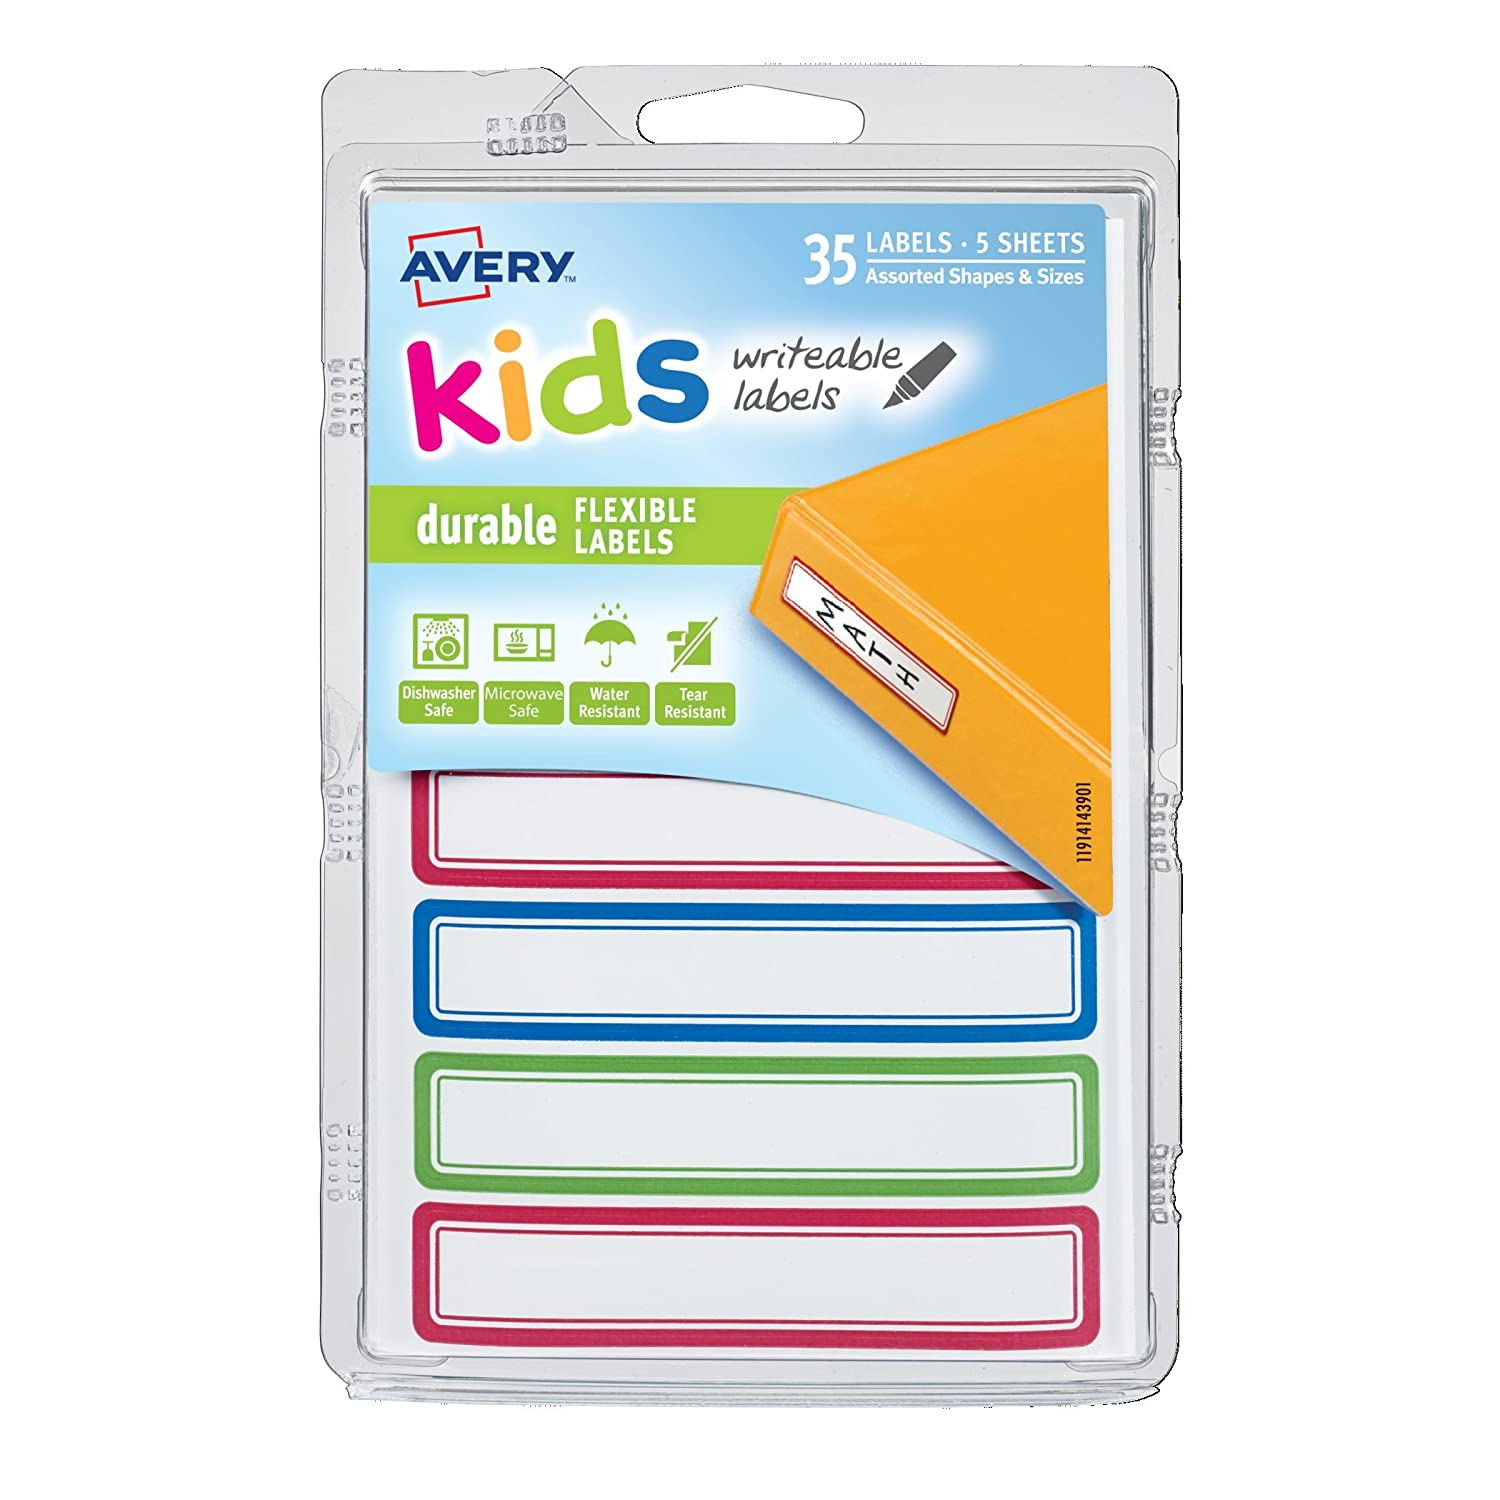 Avery 0.625 x 3.5 Inches Durable Labels for Kids Gear, Assorted, Pack of 35 (41440)